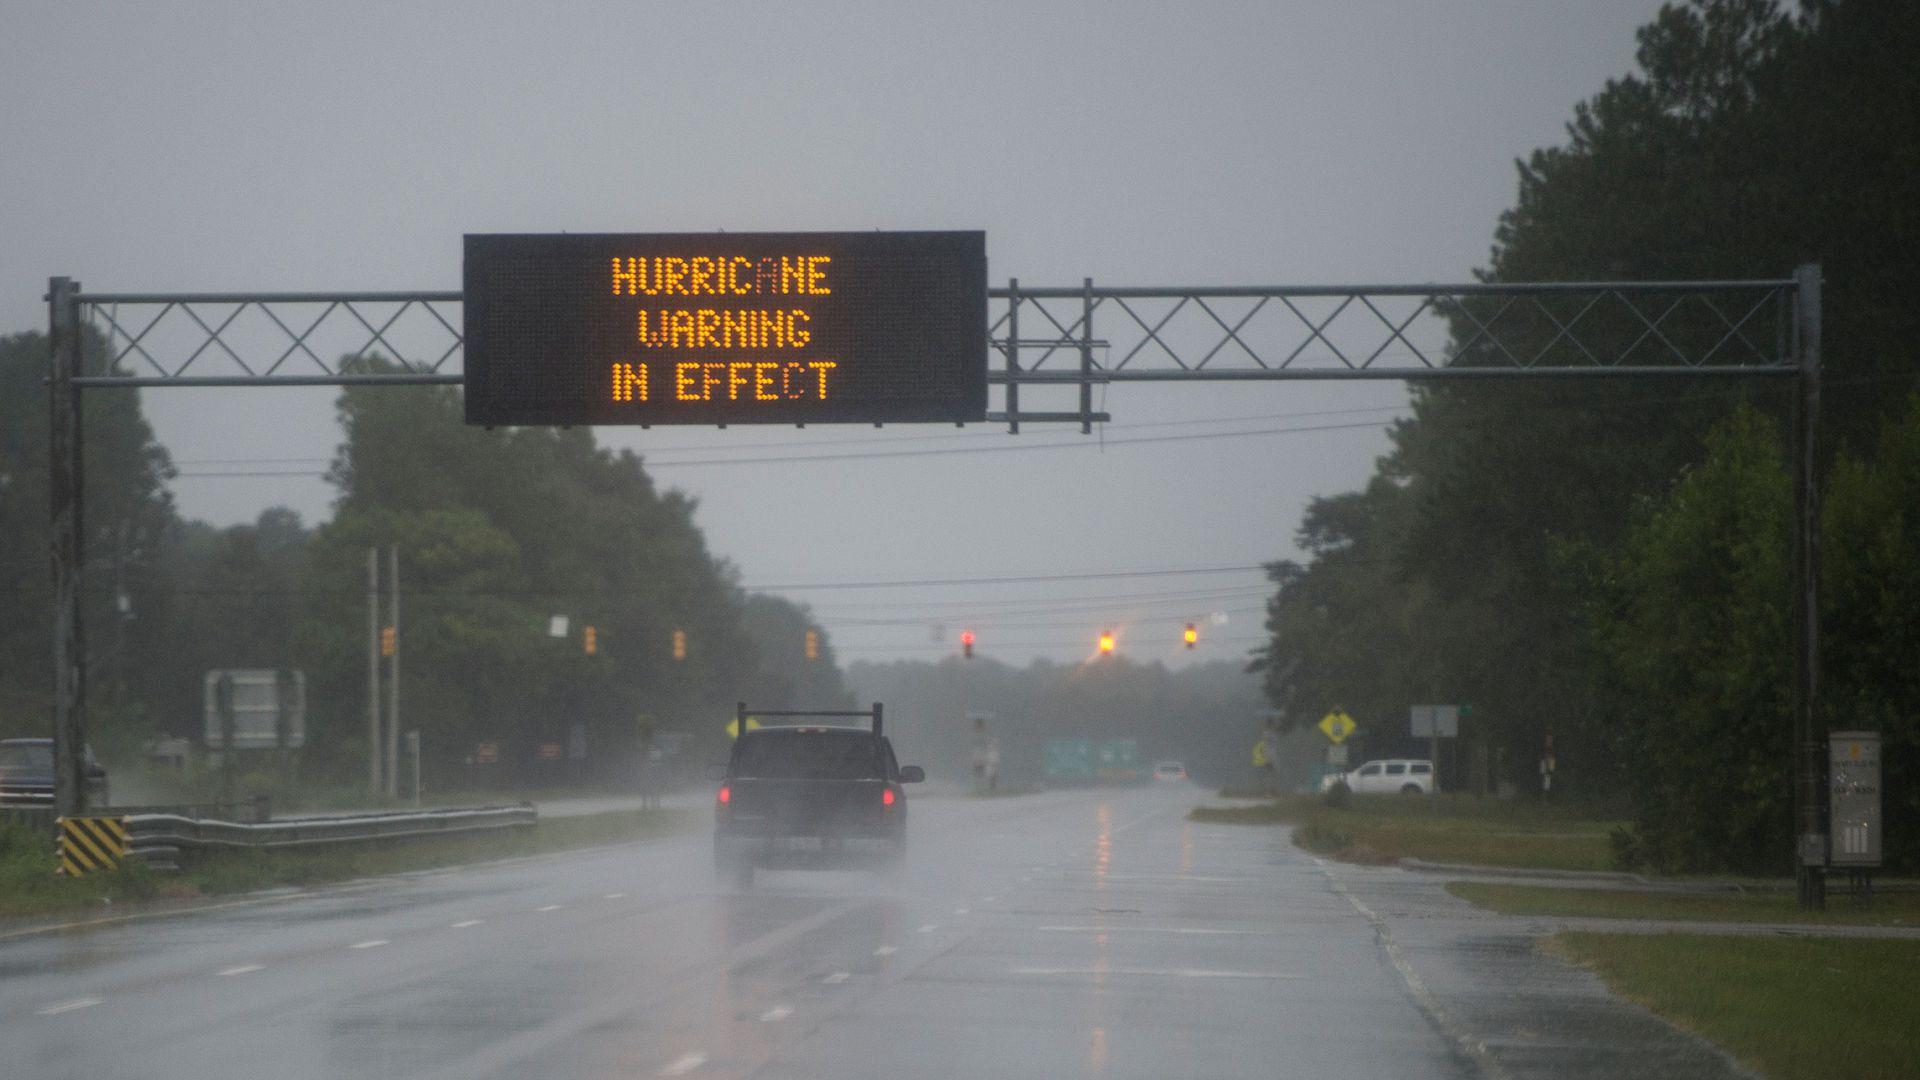 Hurricane warning in effect sign hangs above rainy street